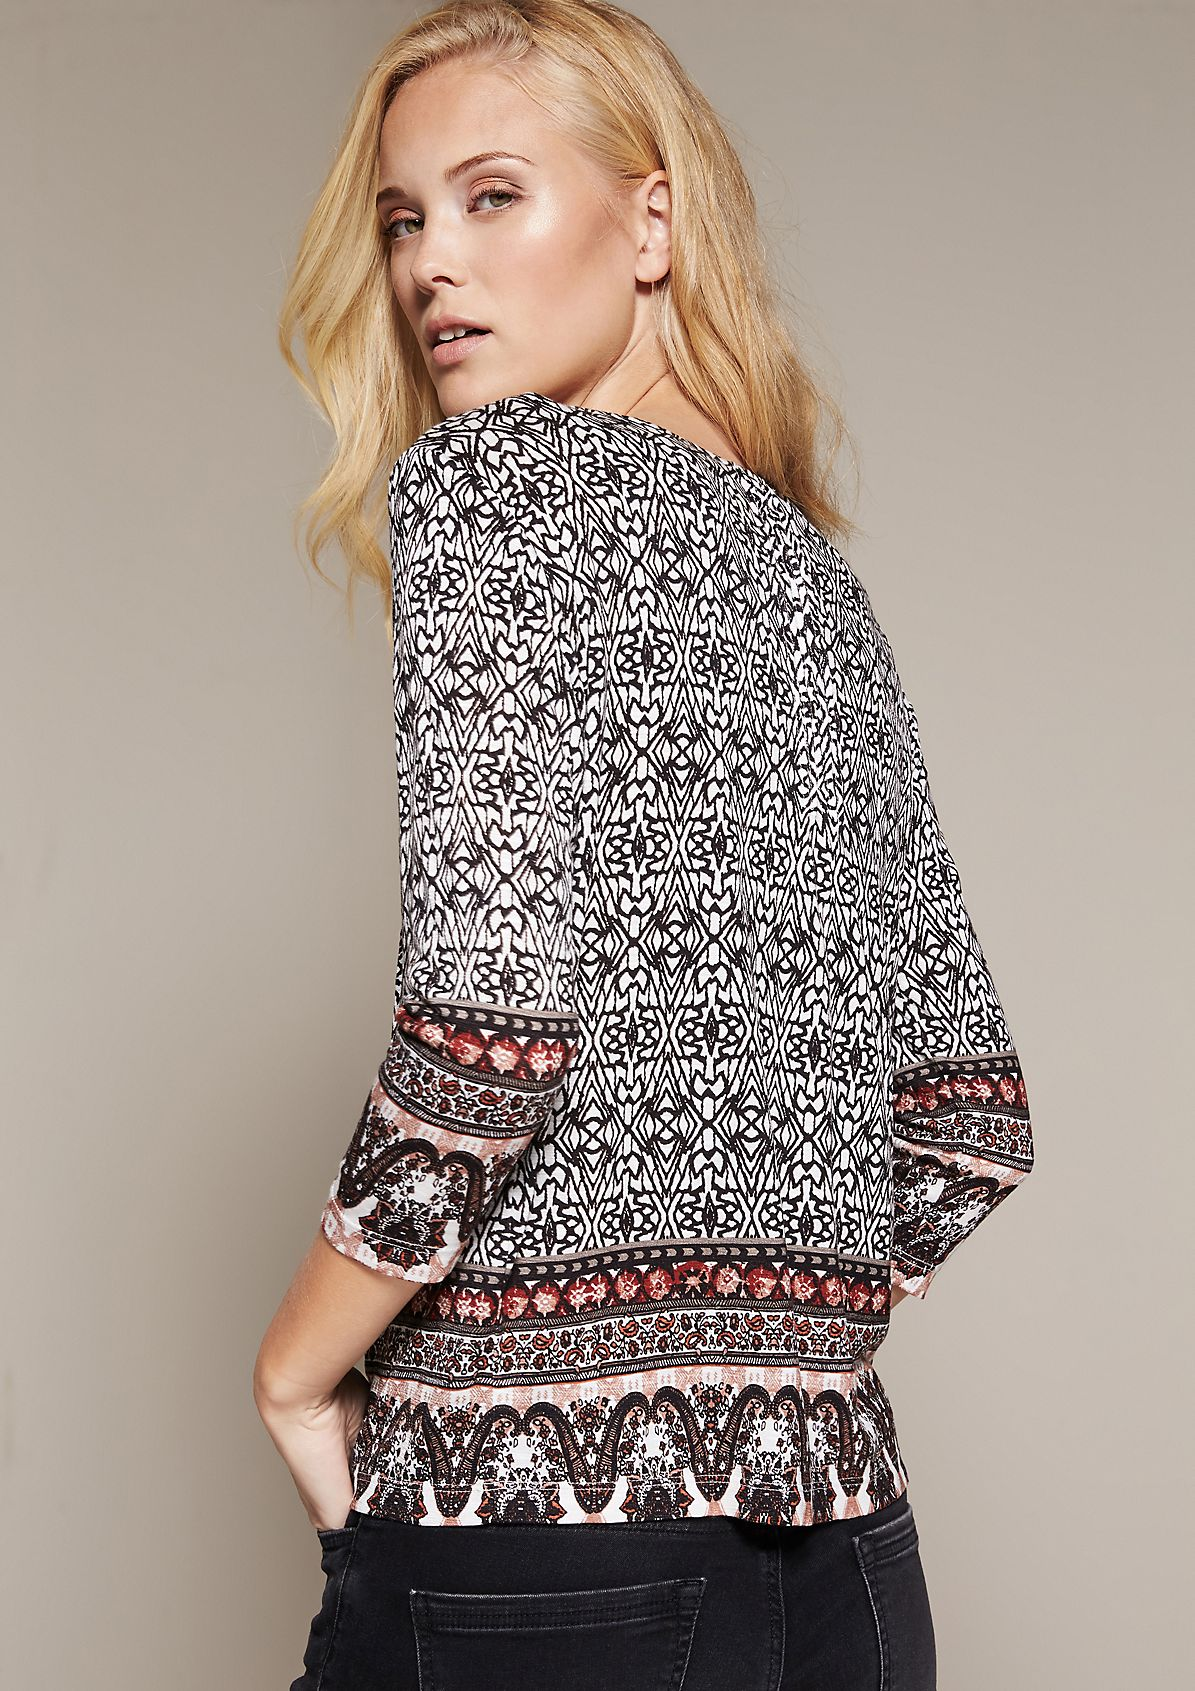 Casual 3/4-length sleeve top with a beautiful mix of patterns from s.Oliver